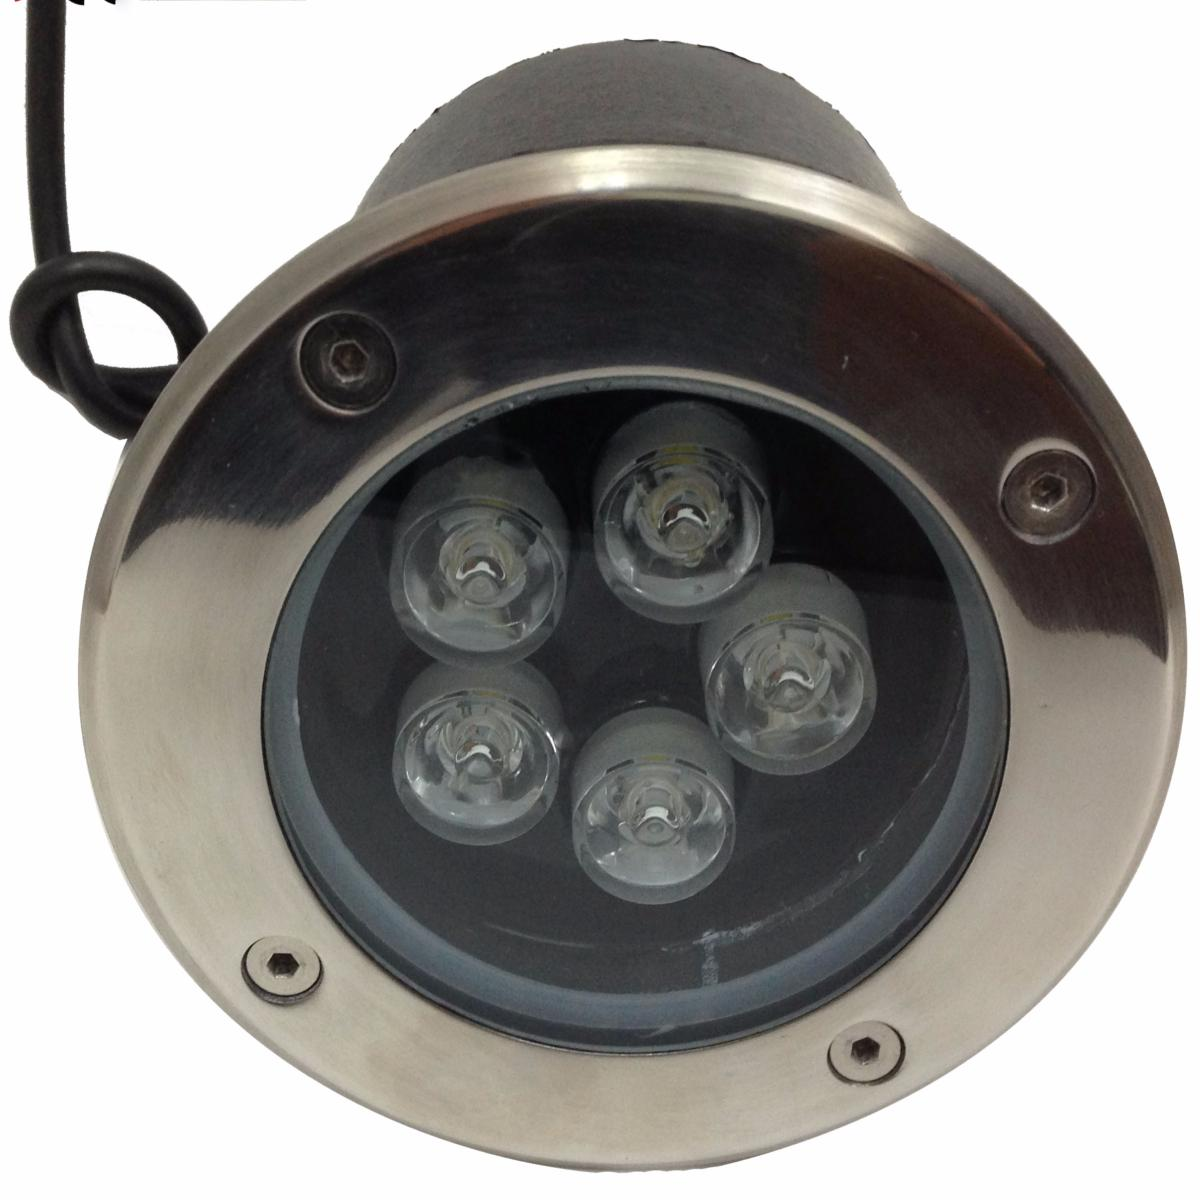 Spot Exterieur Encastrable Led Spot Extérieur Encastrable Sol Led 5w Ip65 80 Ø130